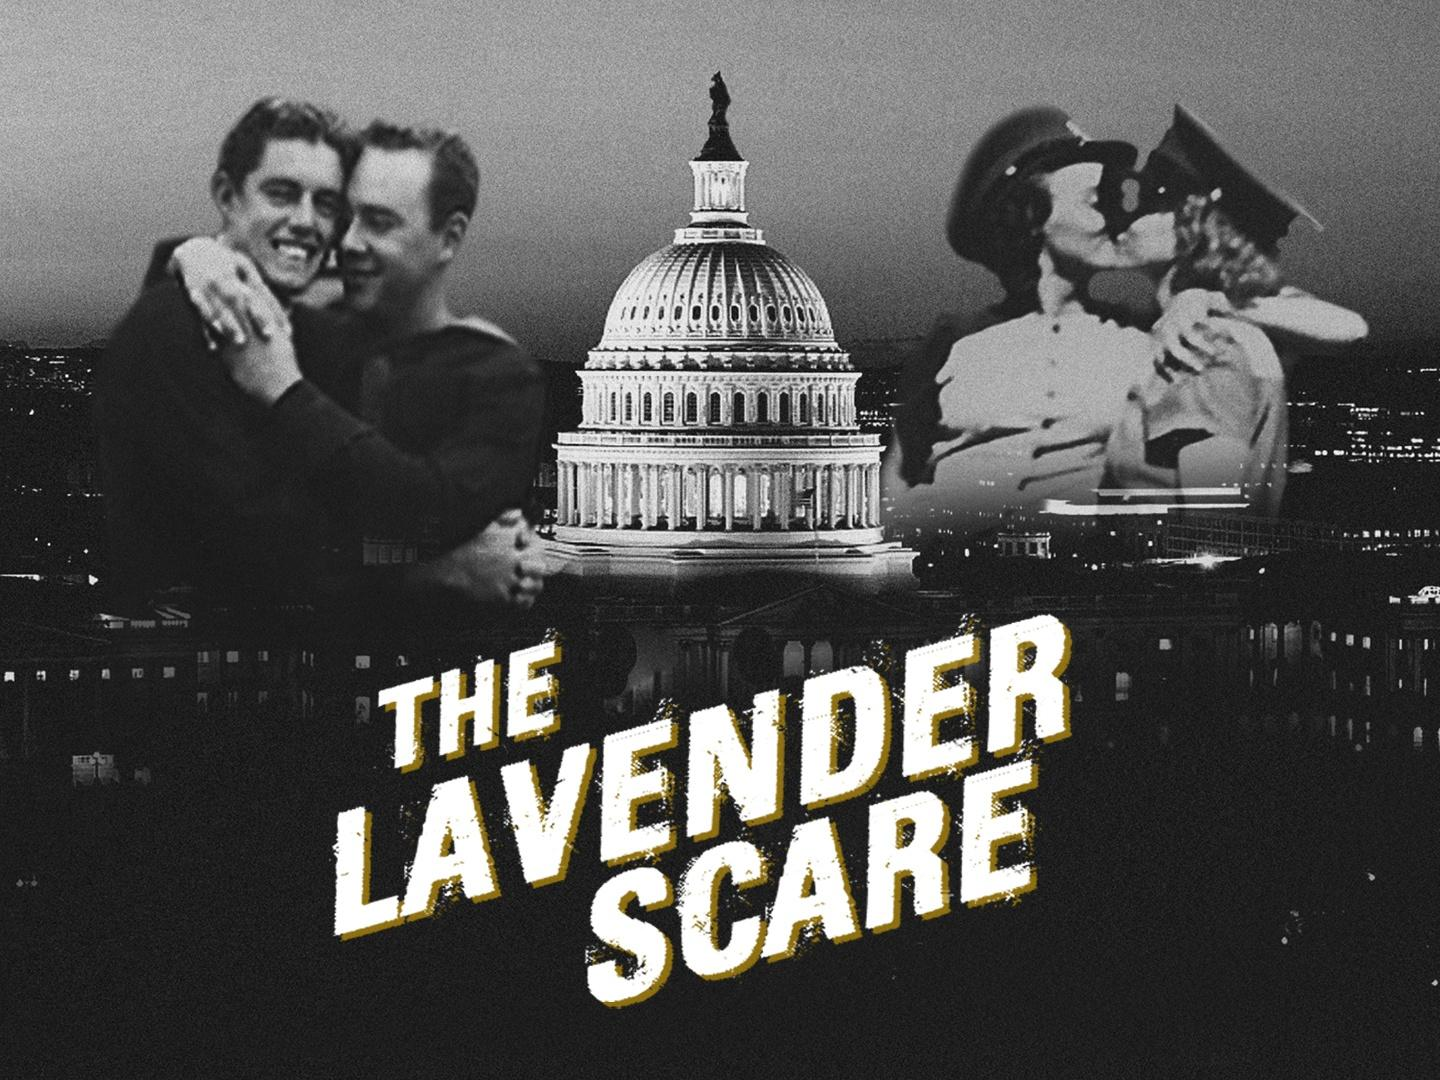 Title image from the Lavender Scare